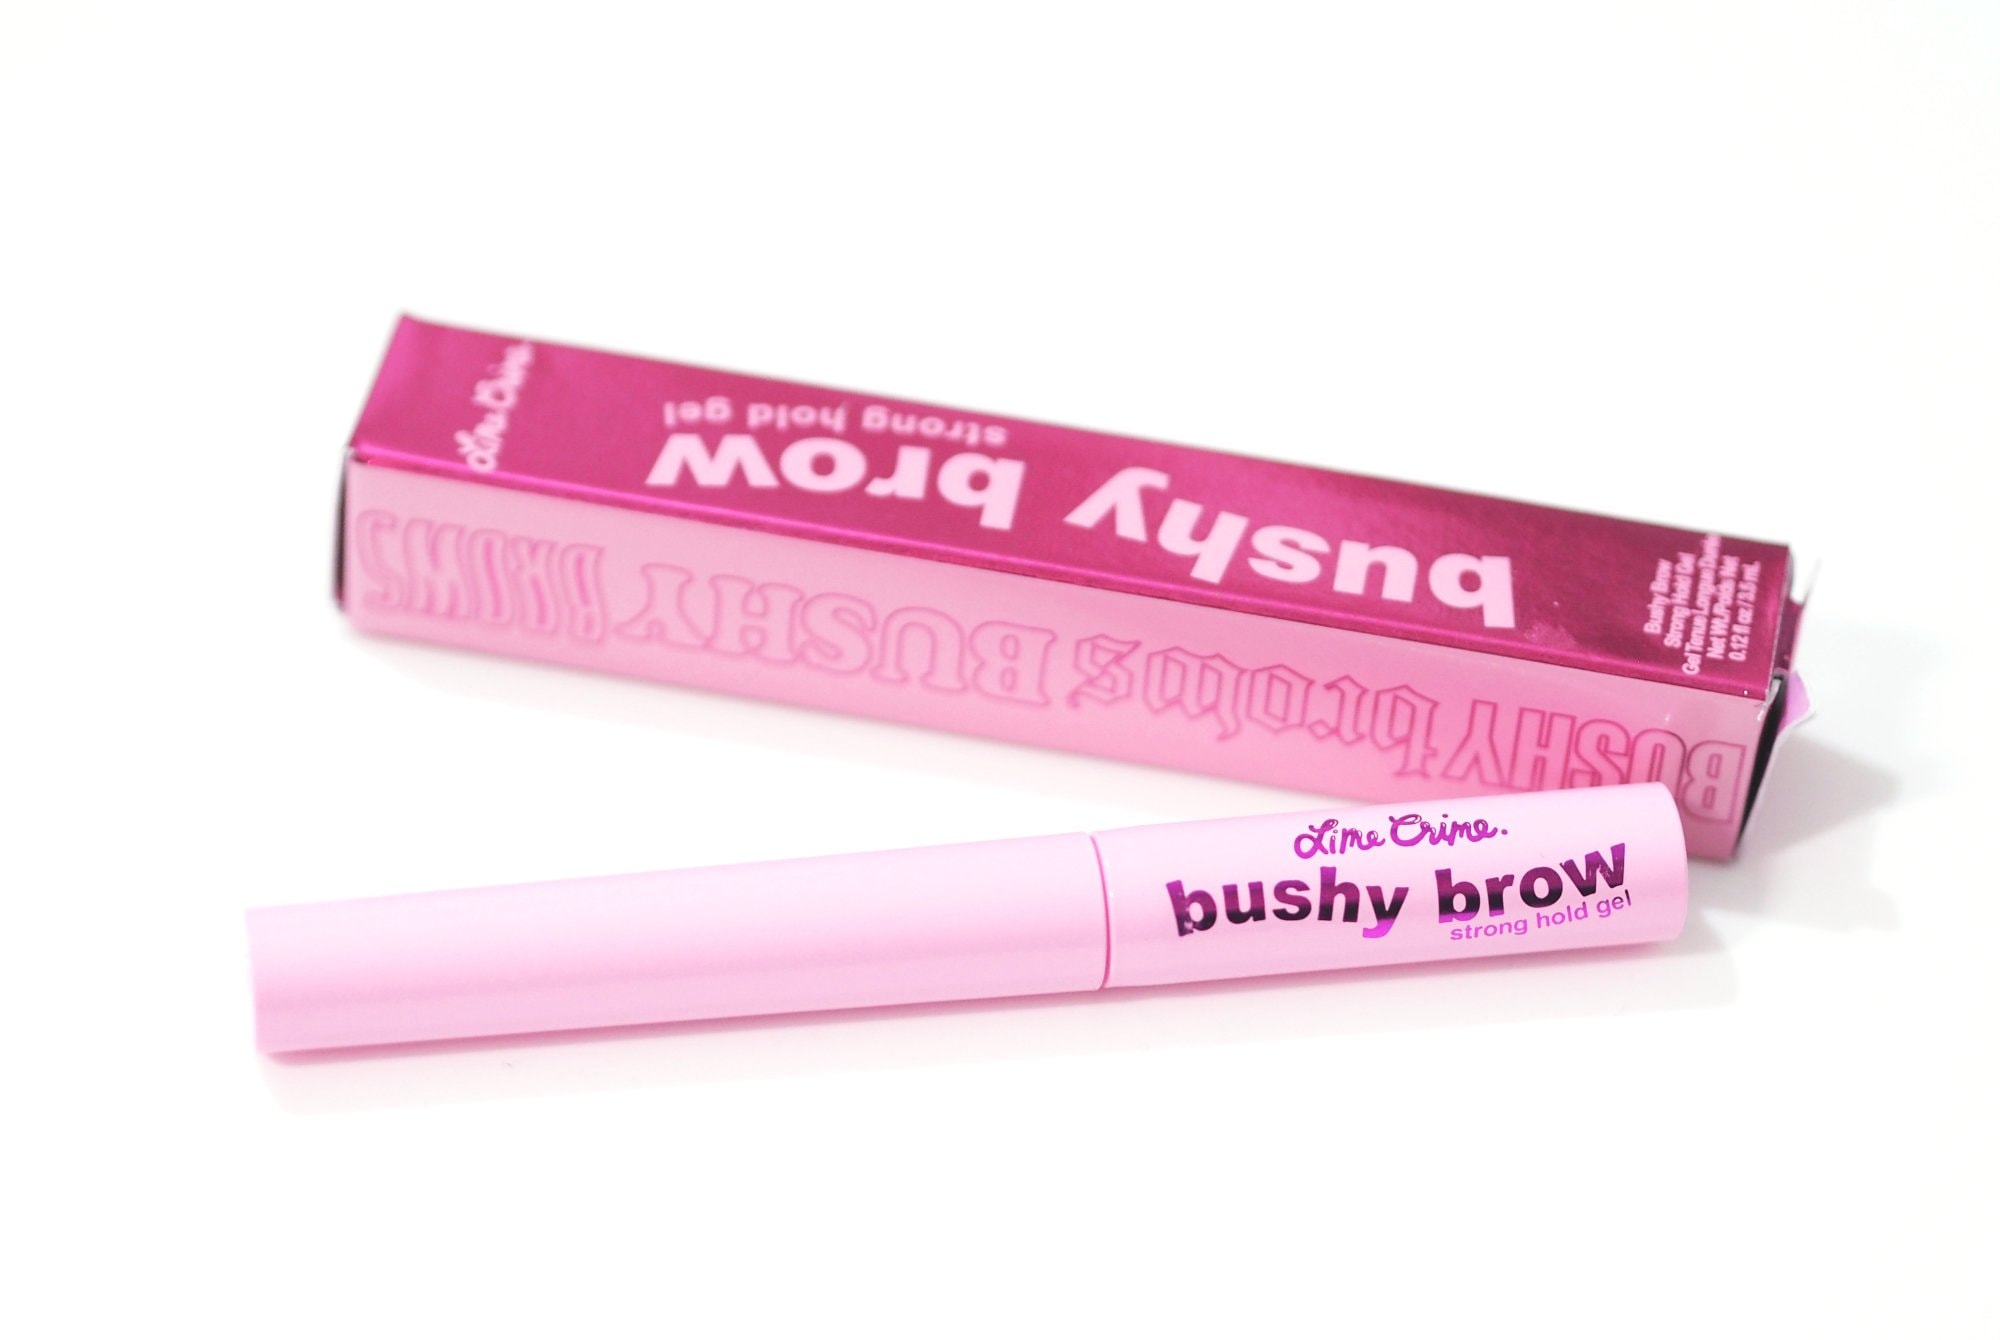 Lime Crime Bushy Brow Gel Review and Swatches in Smokey